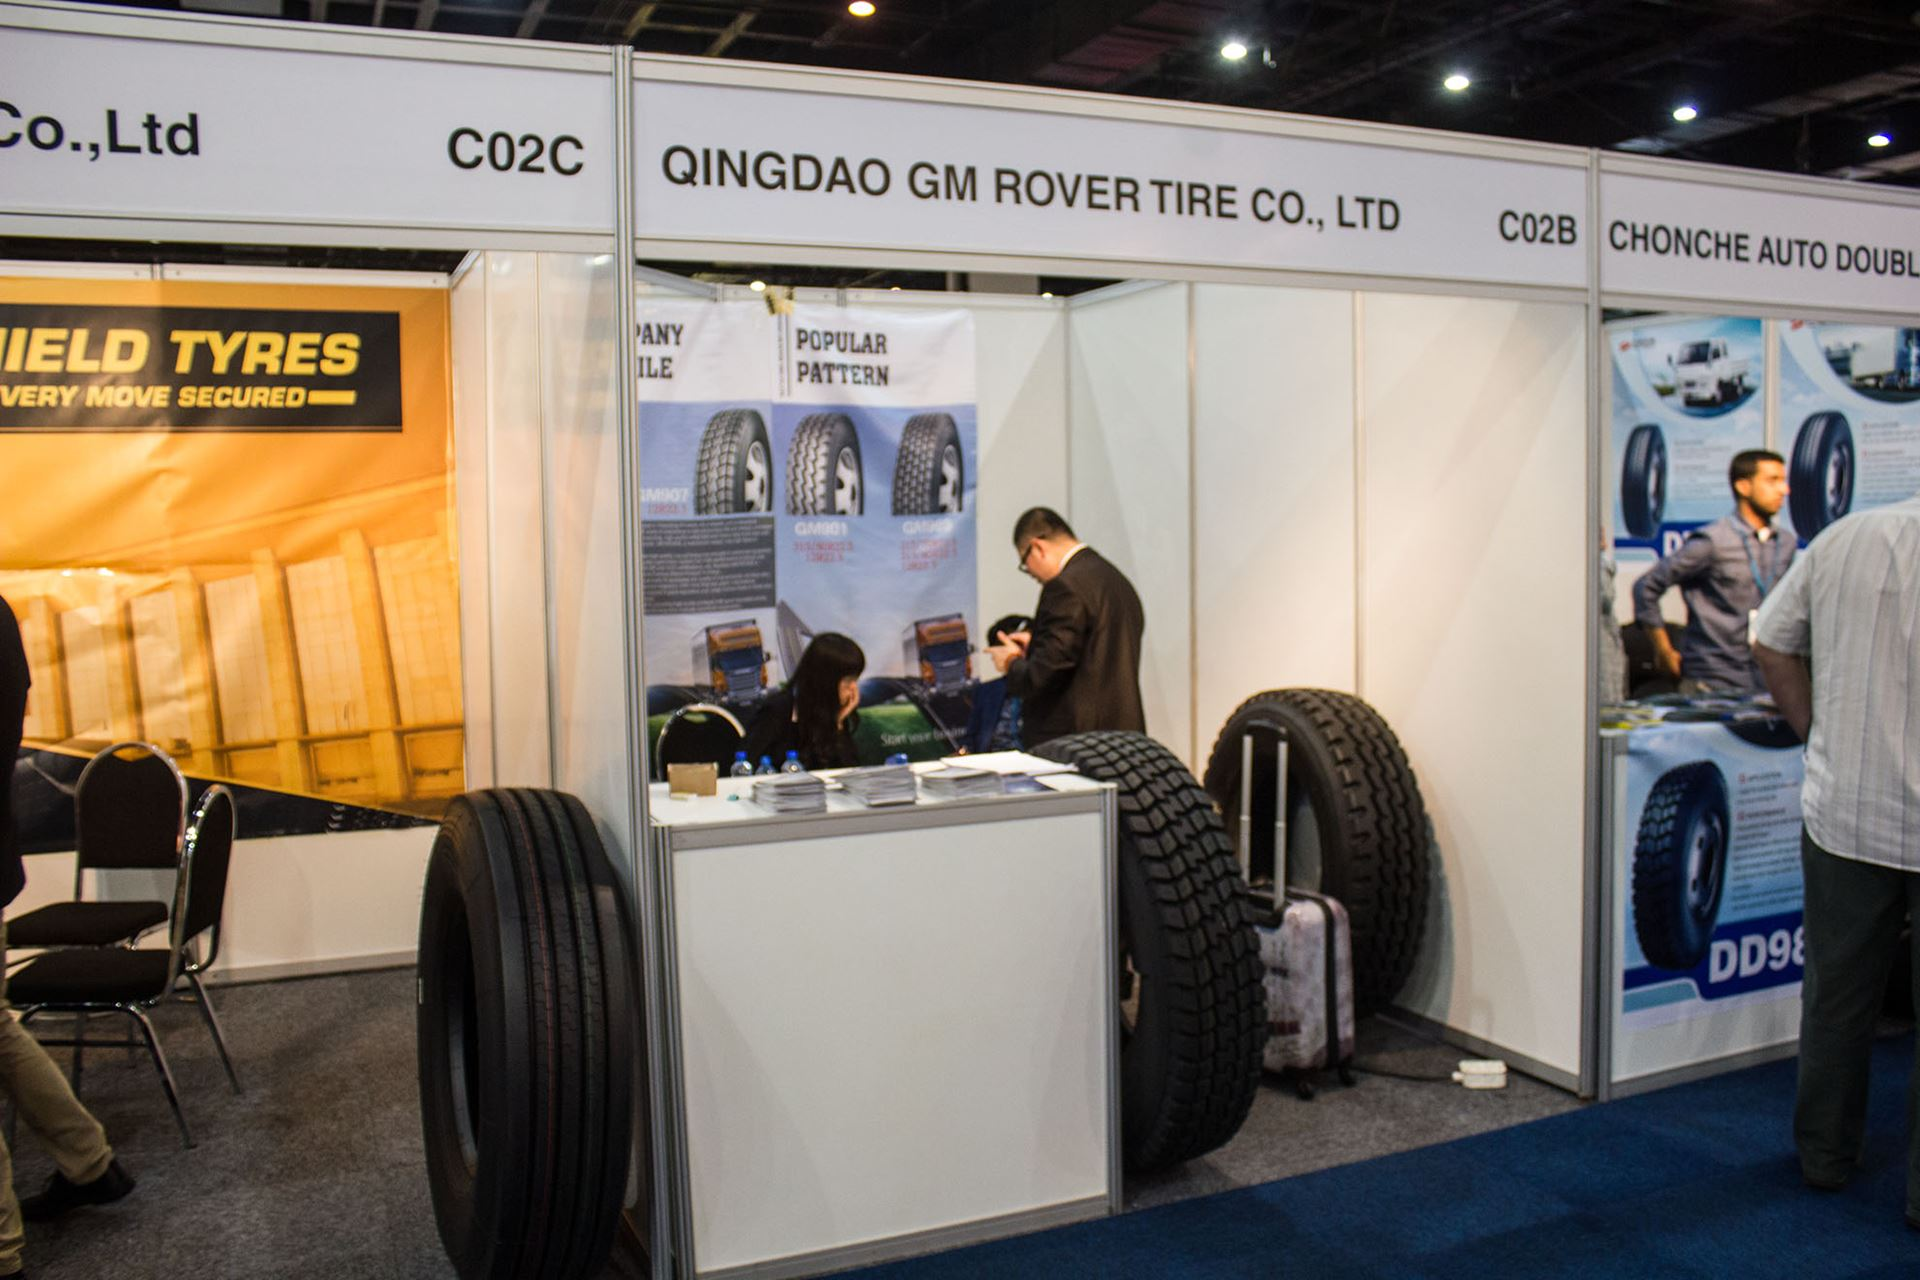 Tyre-Expo-South-Africa-2014-Qingdao-GM-Rover-Tire